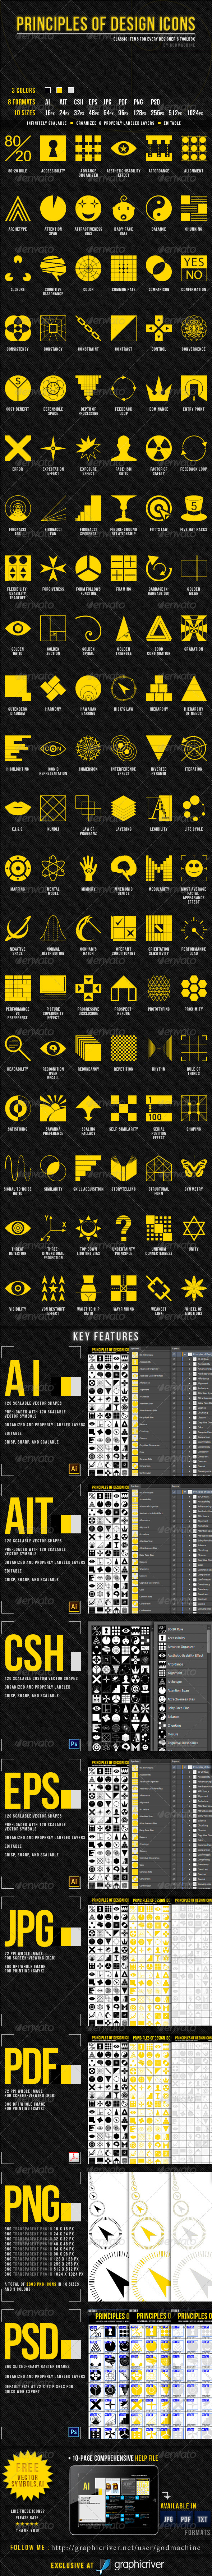 Principles of Design Icons - Web Icons